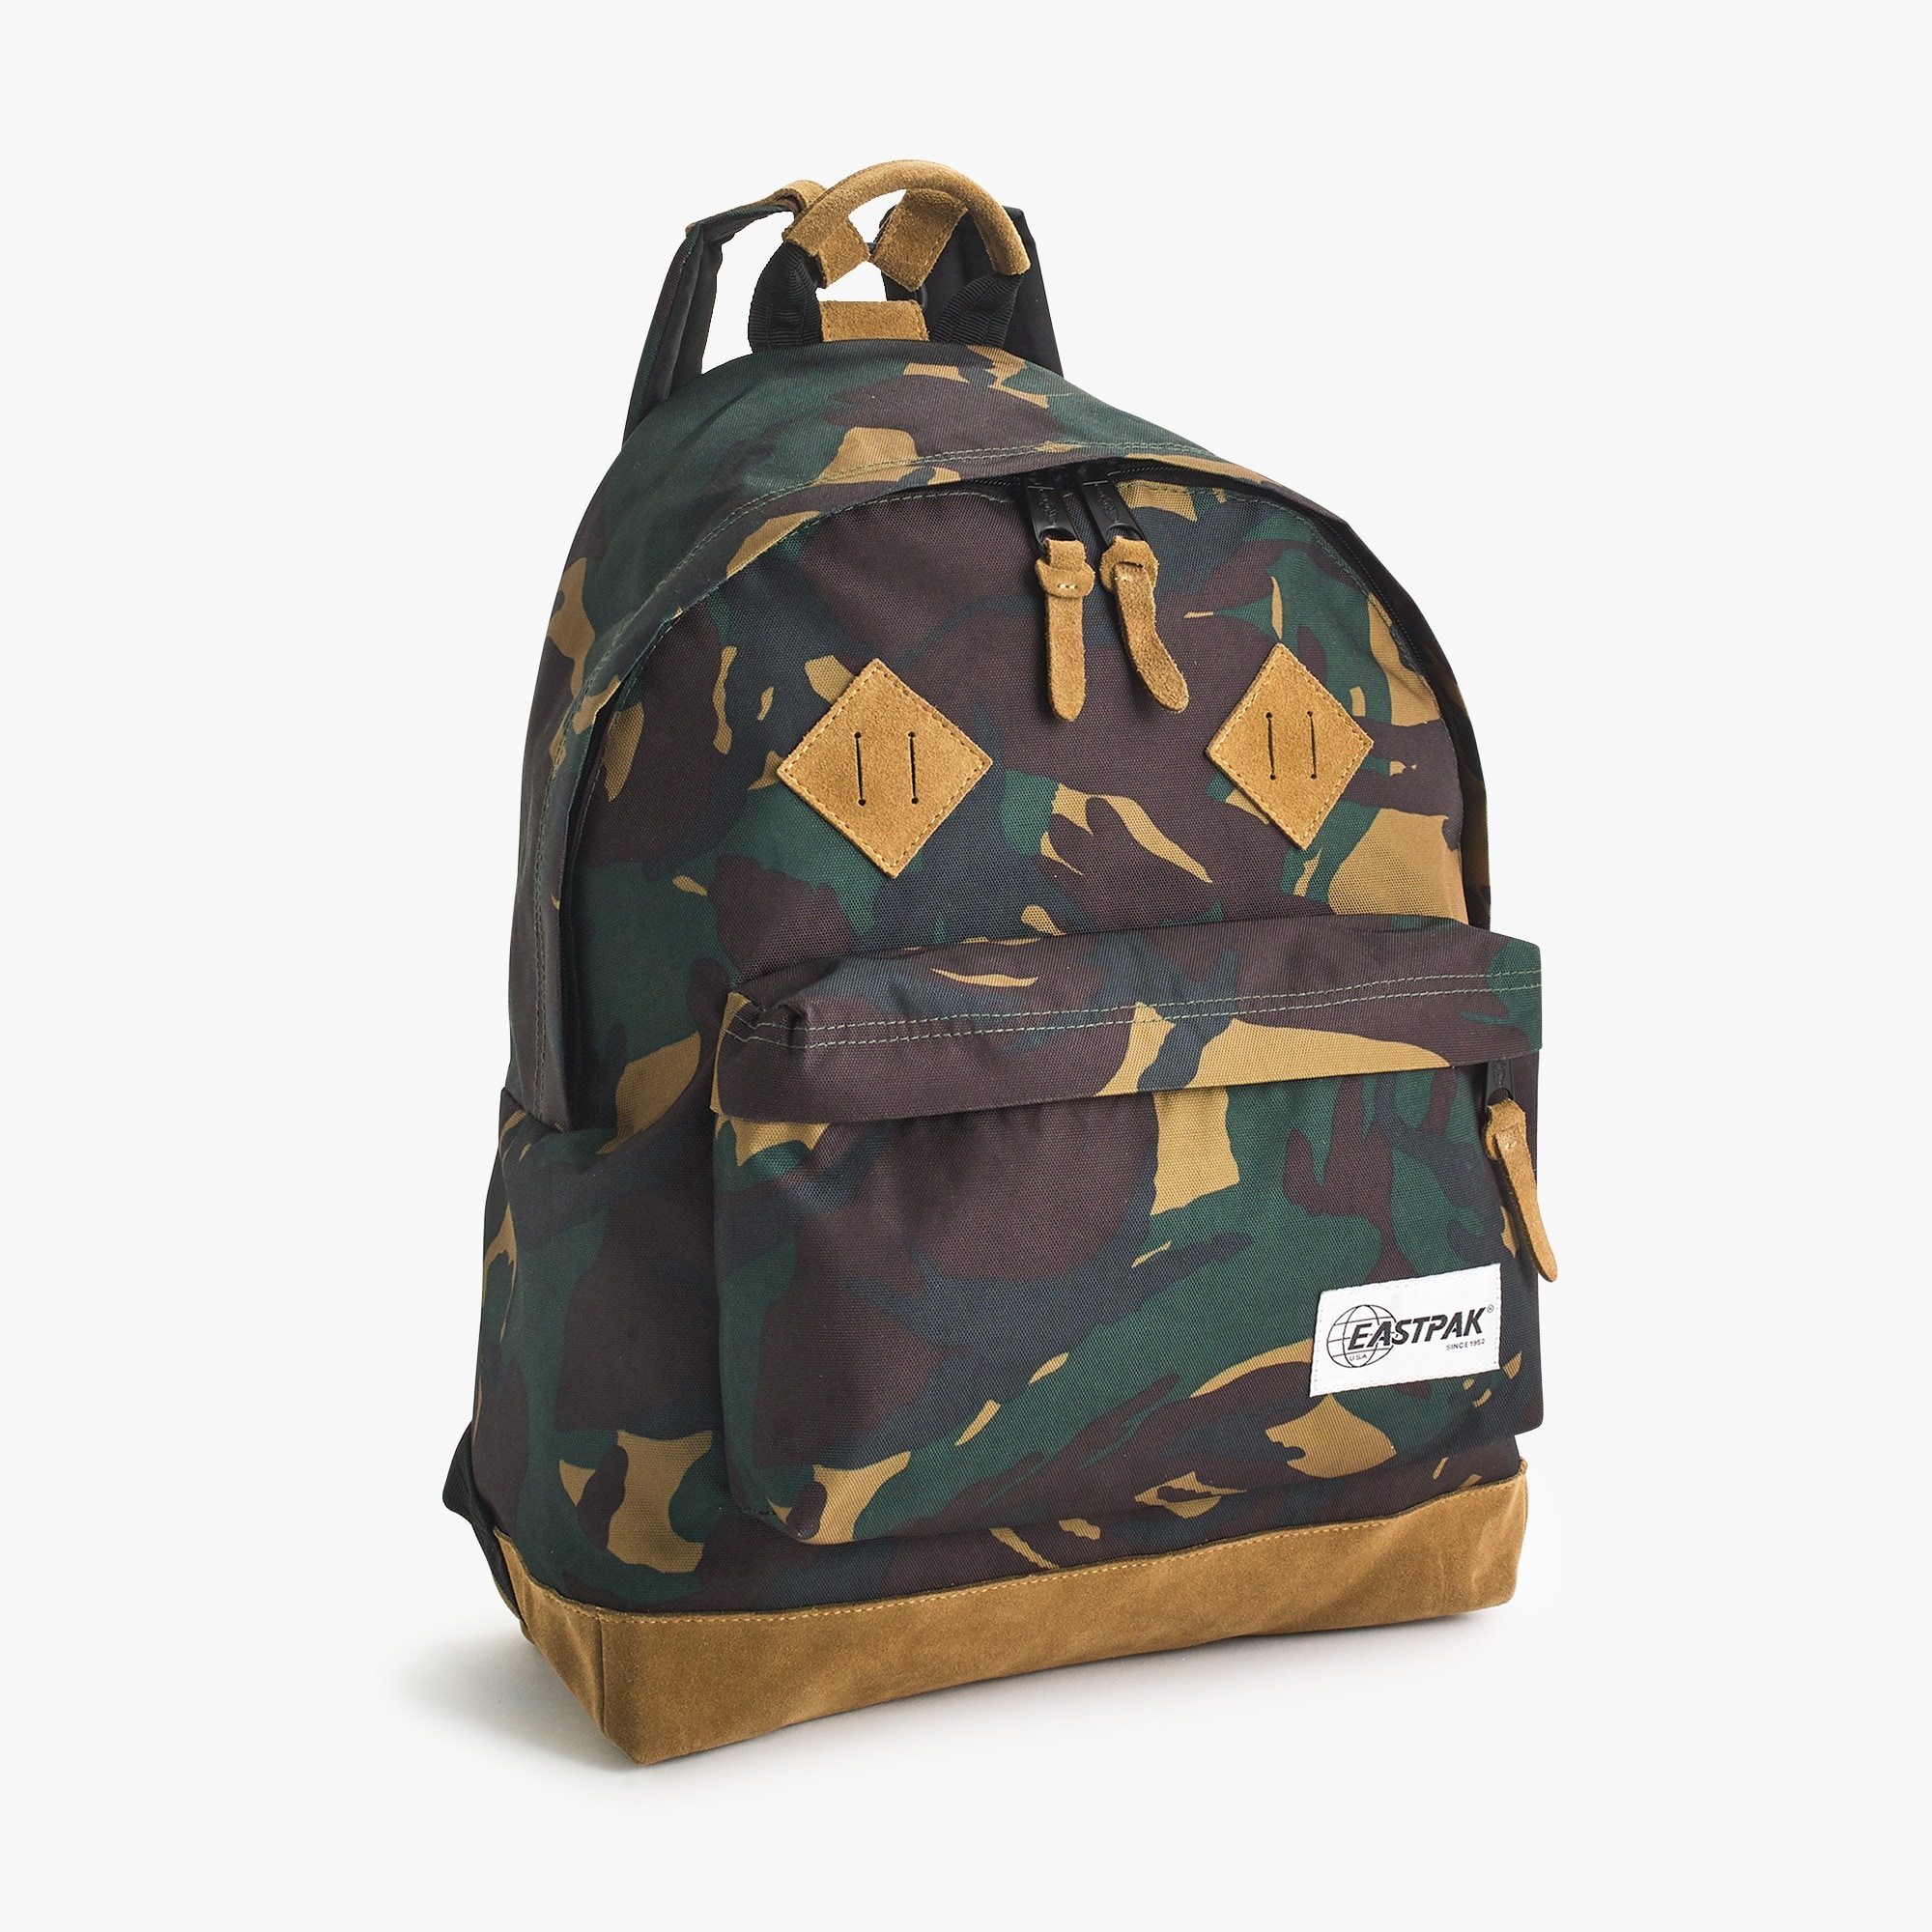 mens Eastpak® for J.Crew backpack